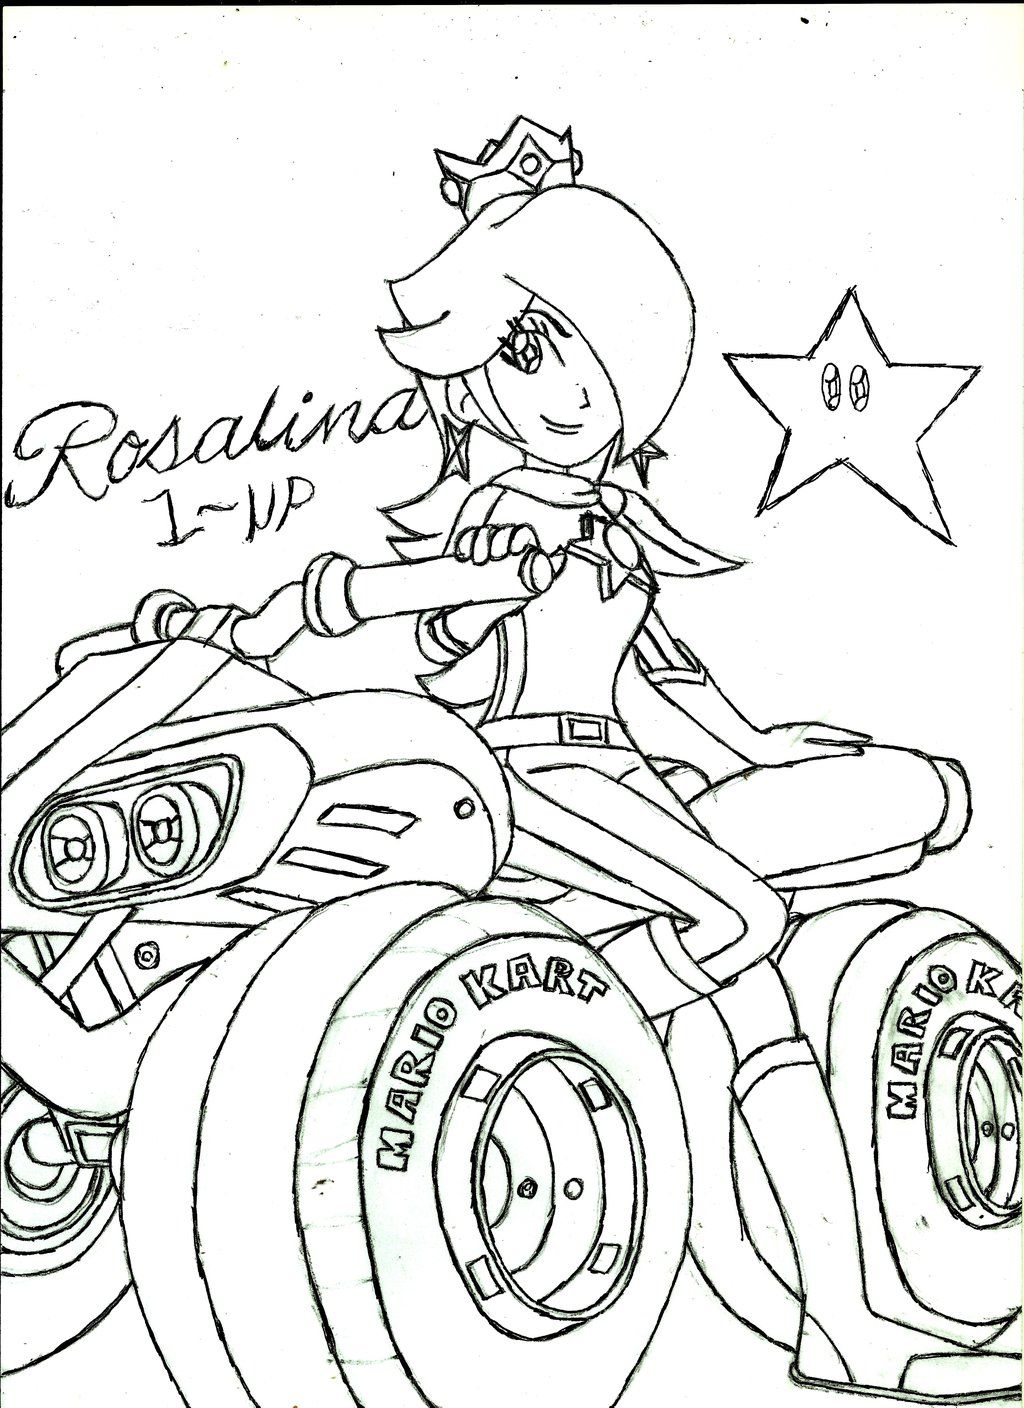 Biker Costume Coloring Pages - Coloring Pages For All Ages